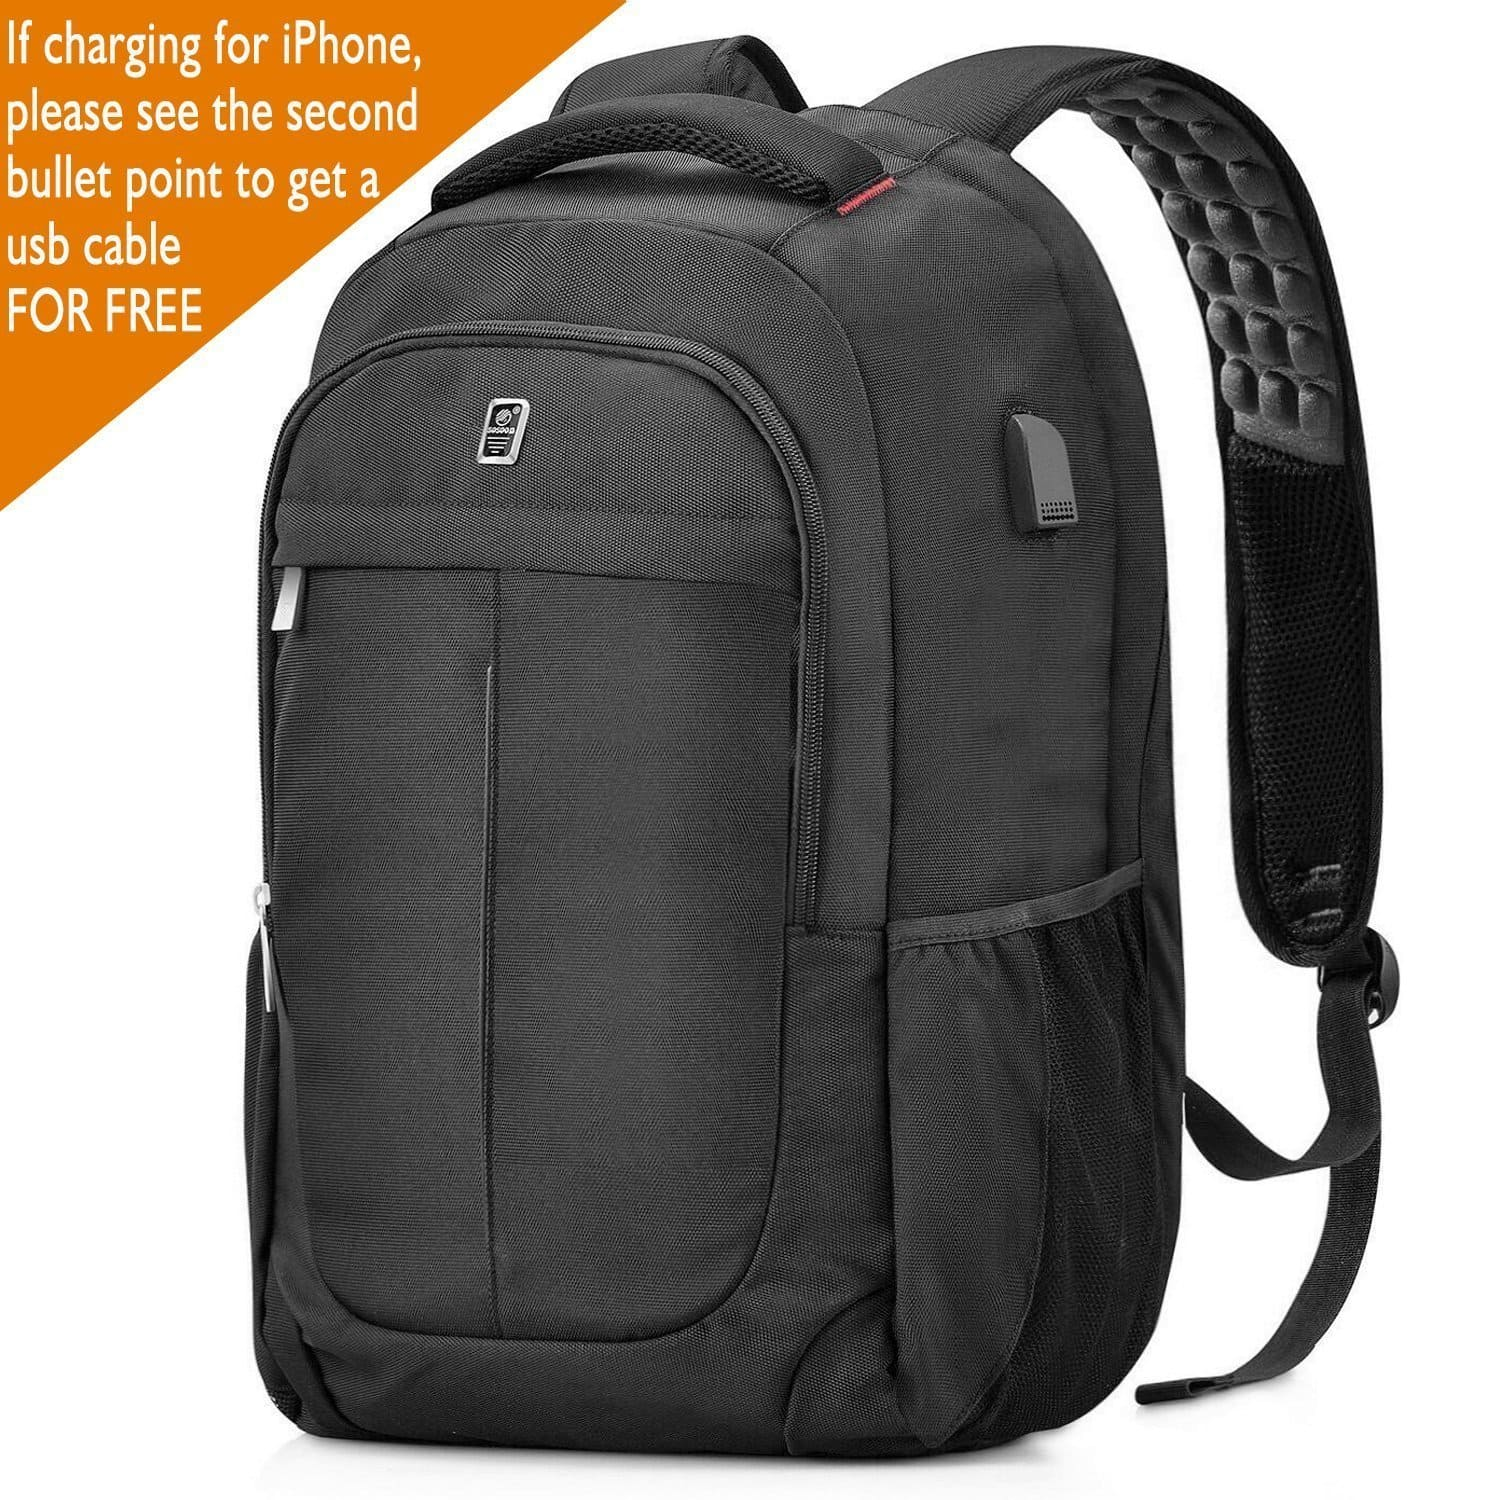 """Sosoon Black 15.6"""" Laptop Backpack with USB Charging Port & FREE USB Charging Cable (Anti-Theft, Water Resistant Polyester) $18.89 after 30% off at Amazon.com"""